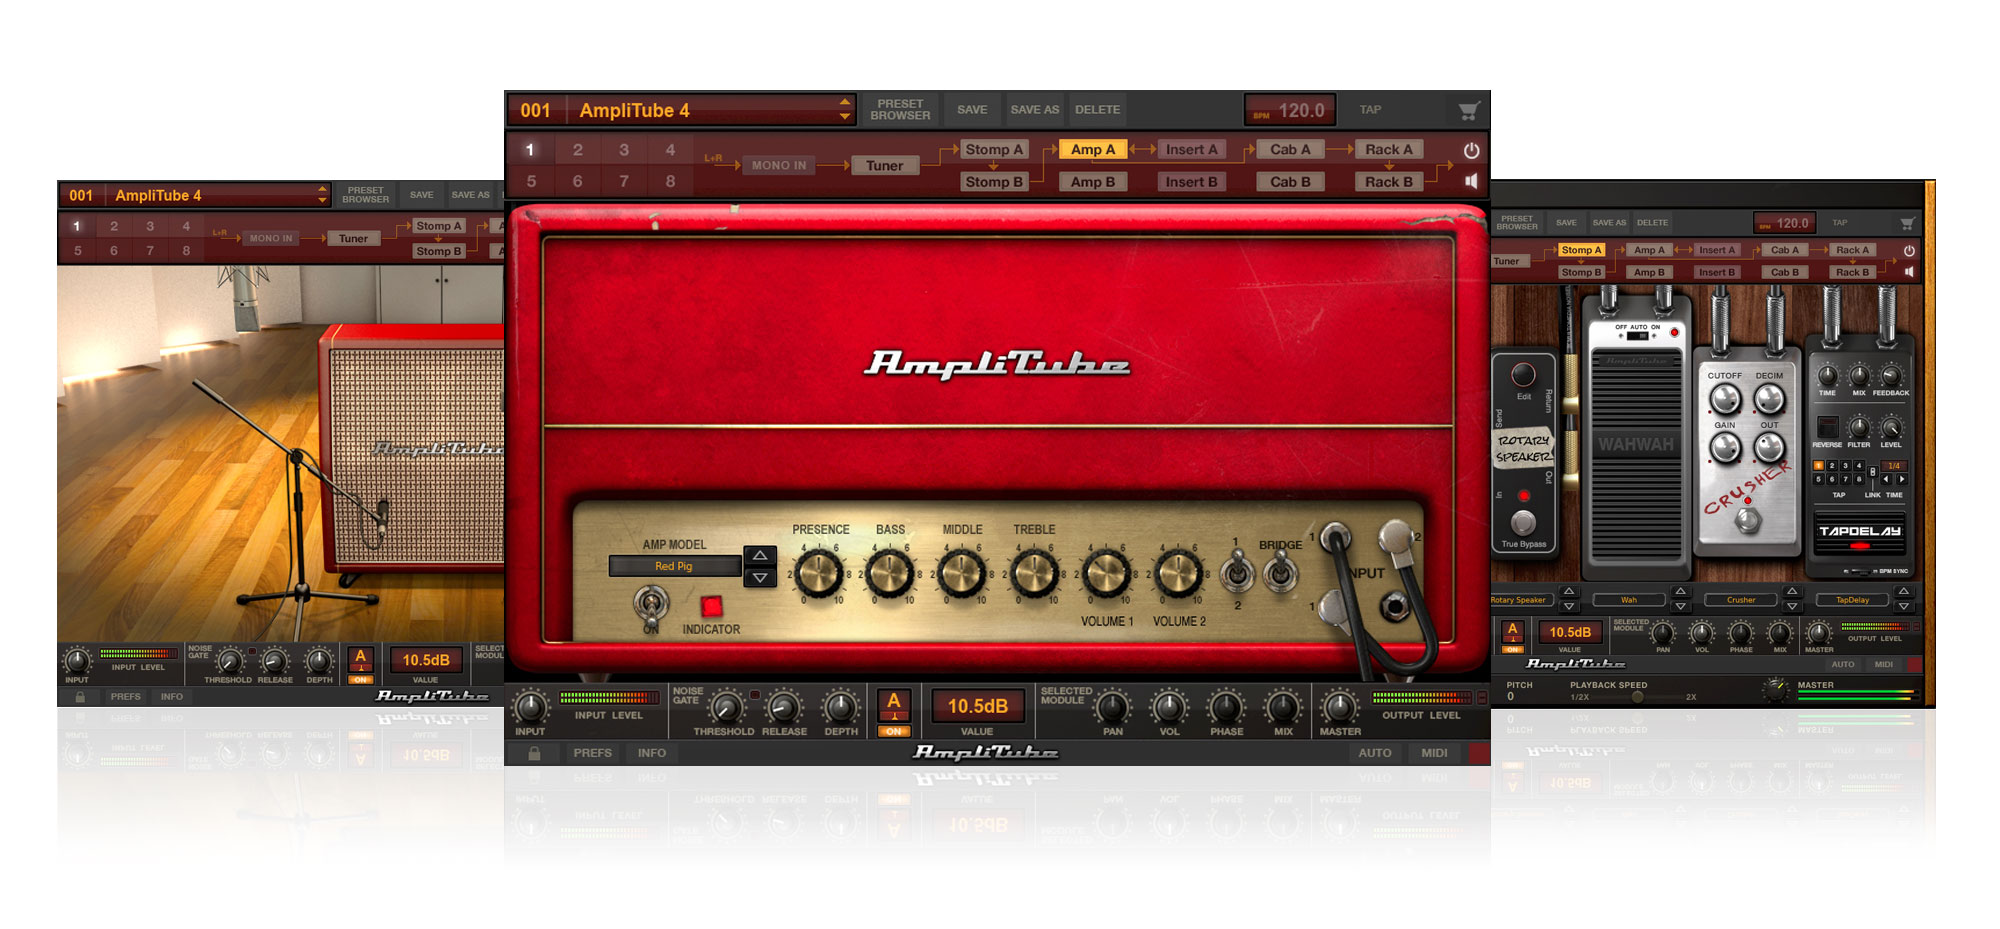 Ik Multimedia Amplitube 4 Download Image Amplifier Sederhana Transistor Audio Circuits Pc Is A Guitar And Bass Tone Studio For Mac That Works As Standalone Application Plug In Your Favorite Daw